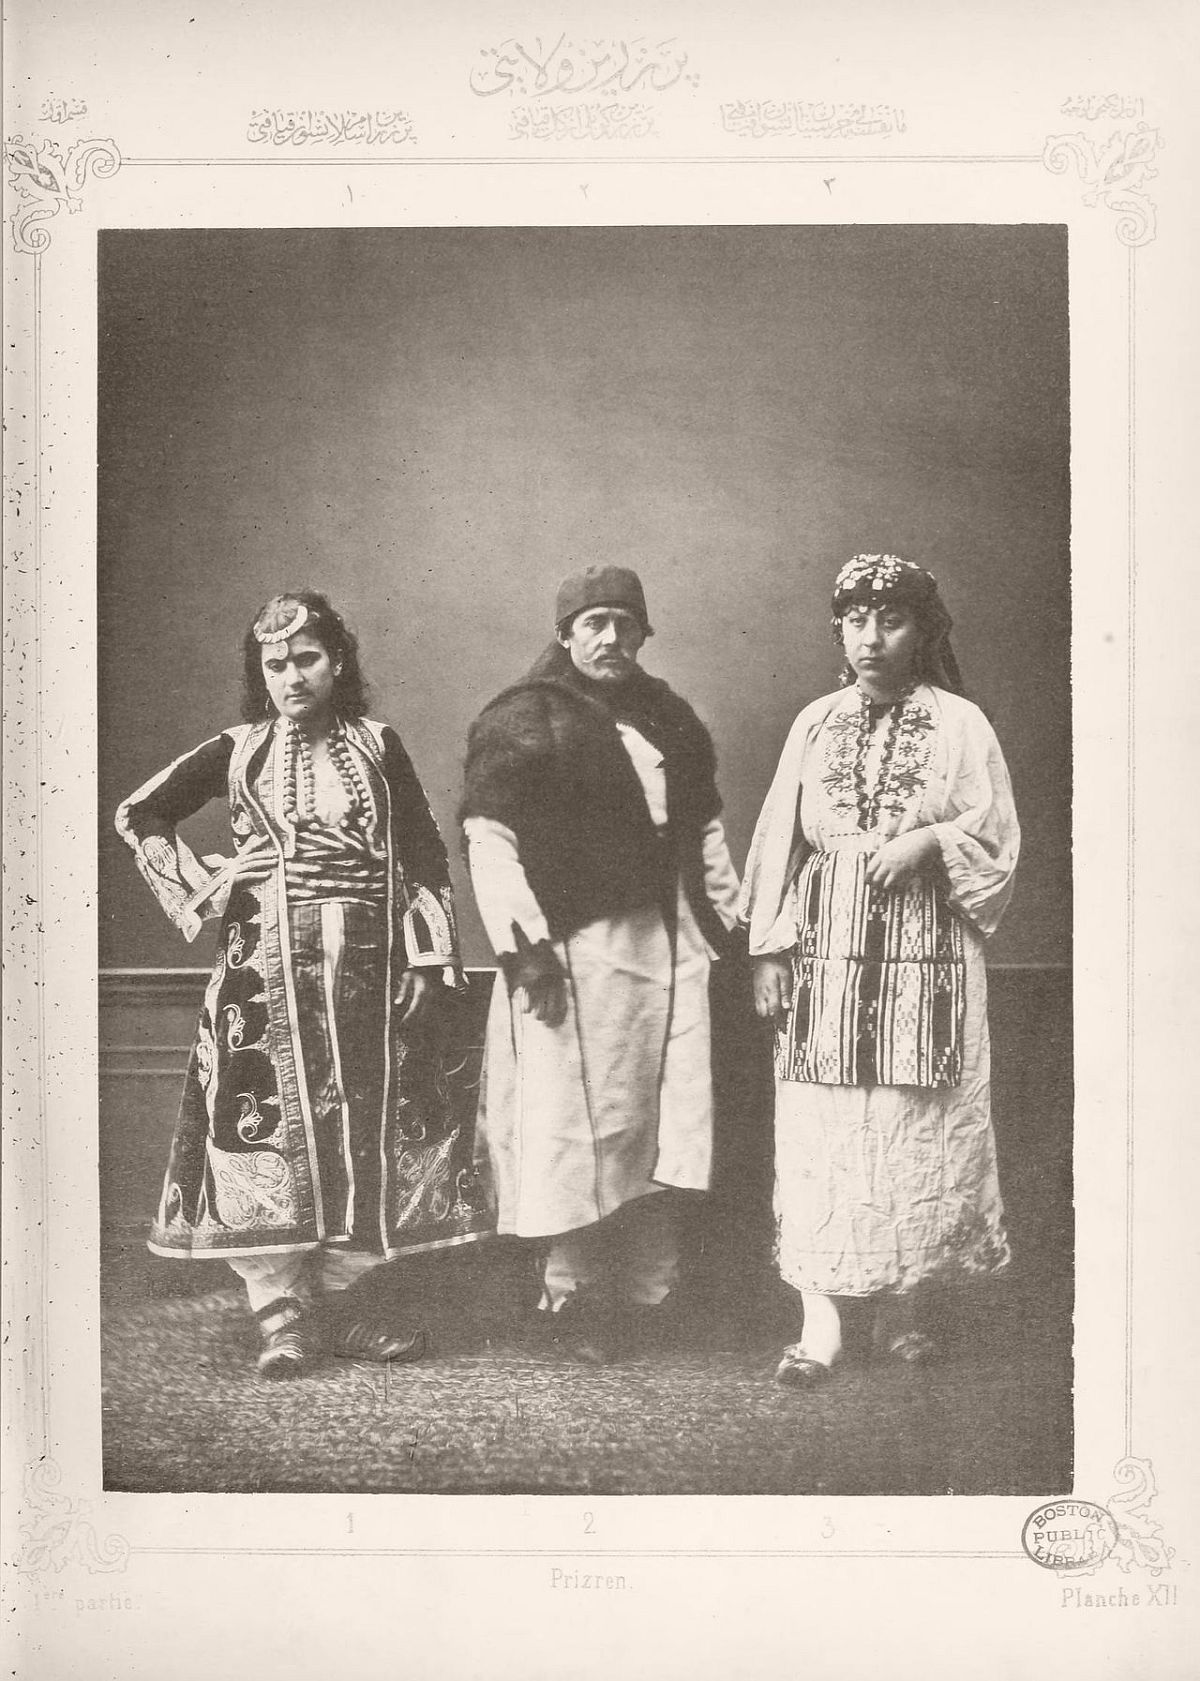 1: Muslim woman from Prizren 2. Farmers from around Prizren 3. Christian peasant woman from Matefse